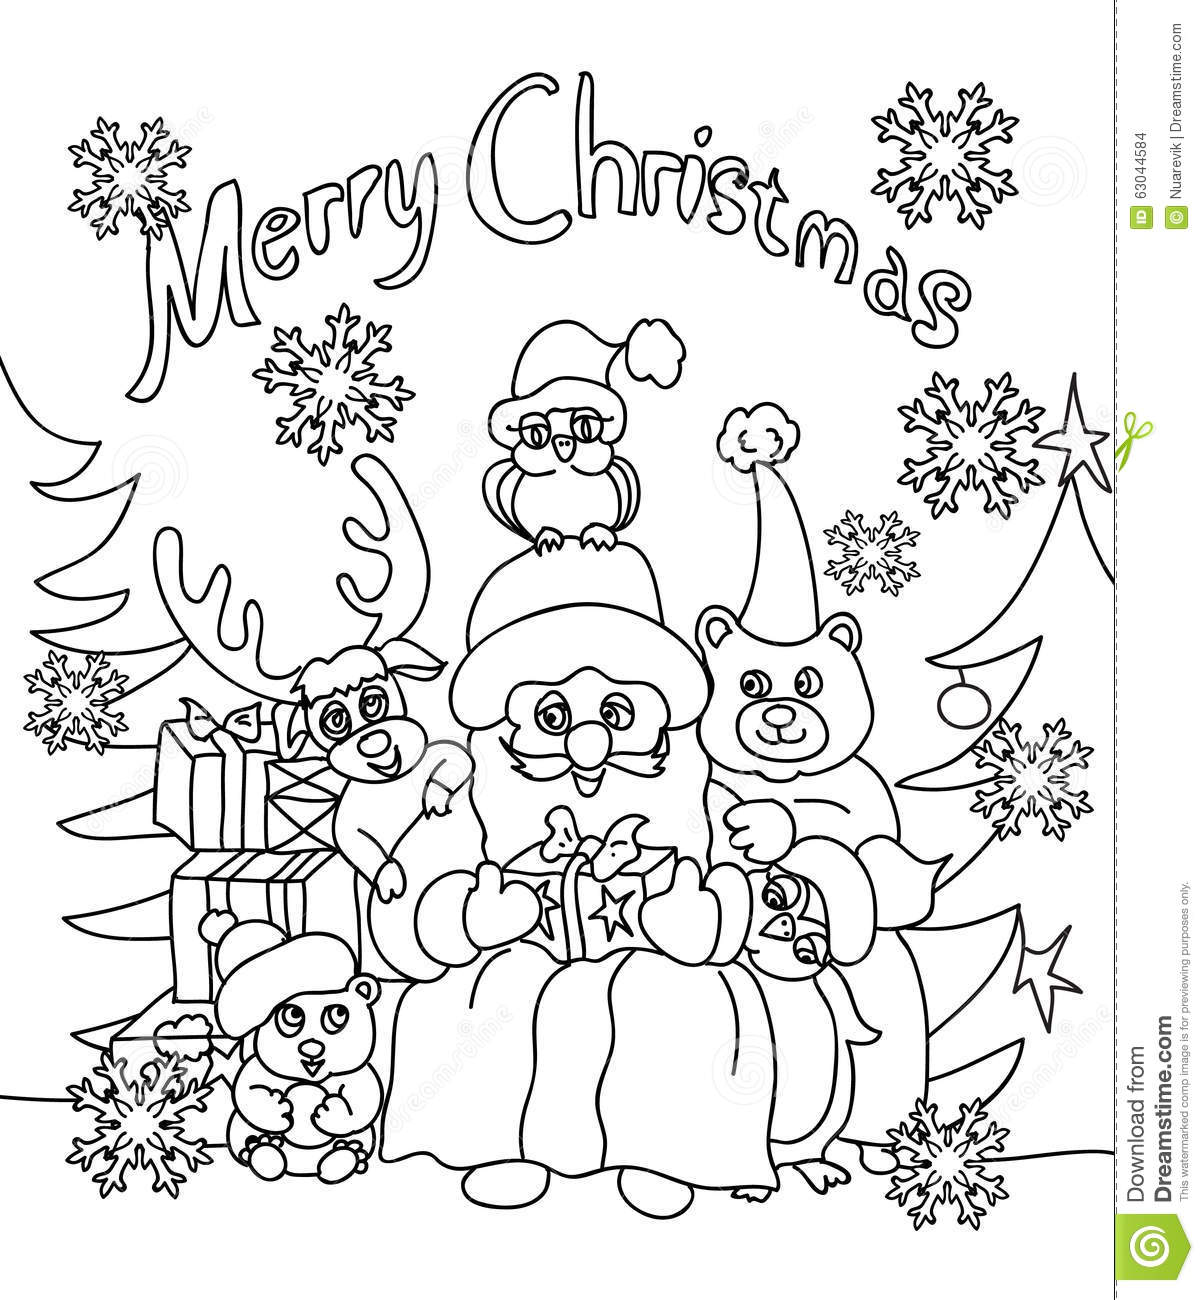 Christmas Coloring In Cards With Greeting Card Stock Illustration